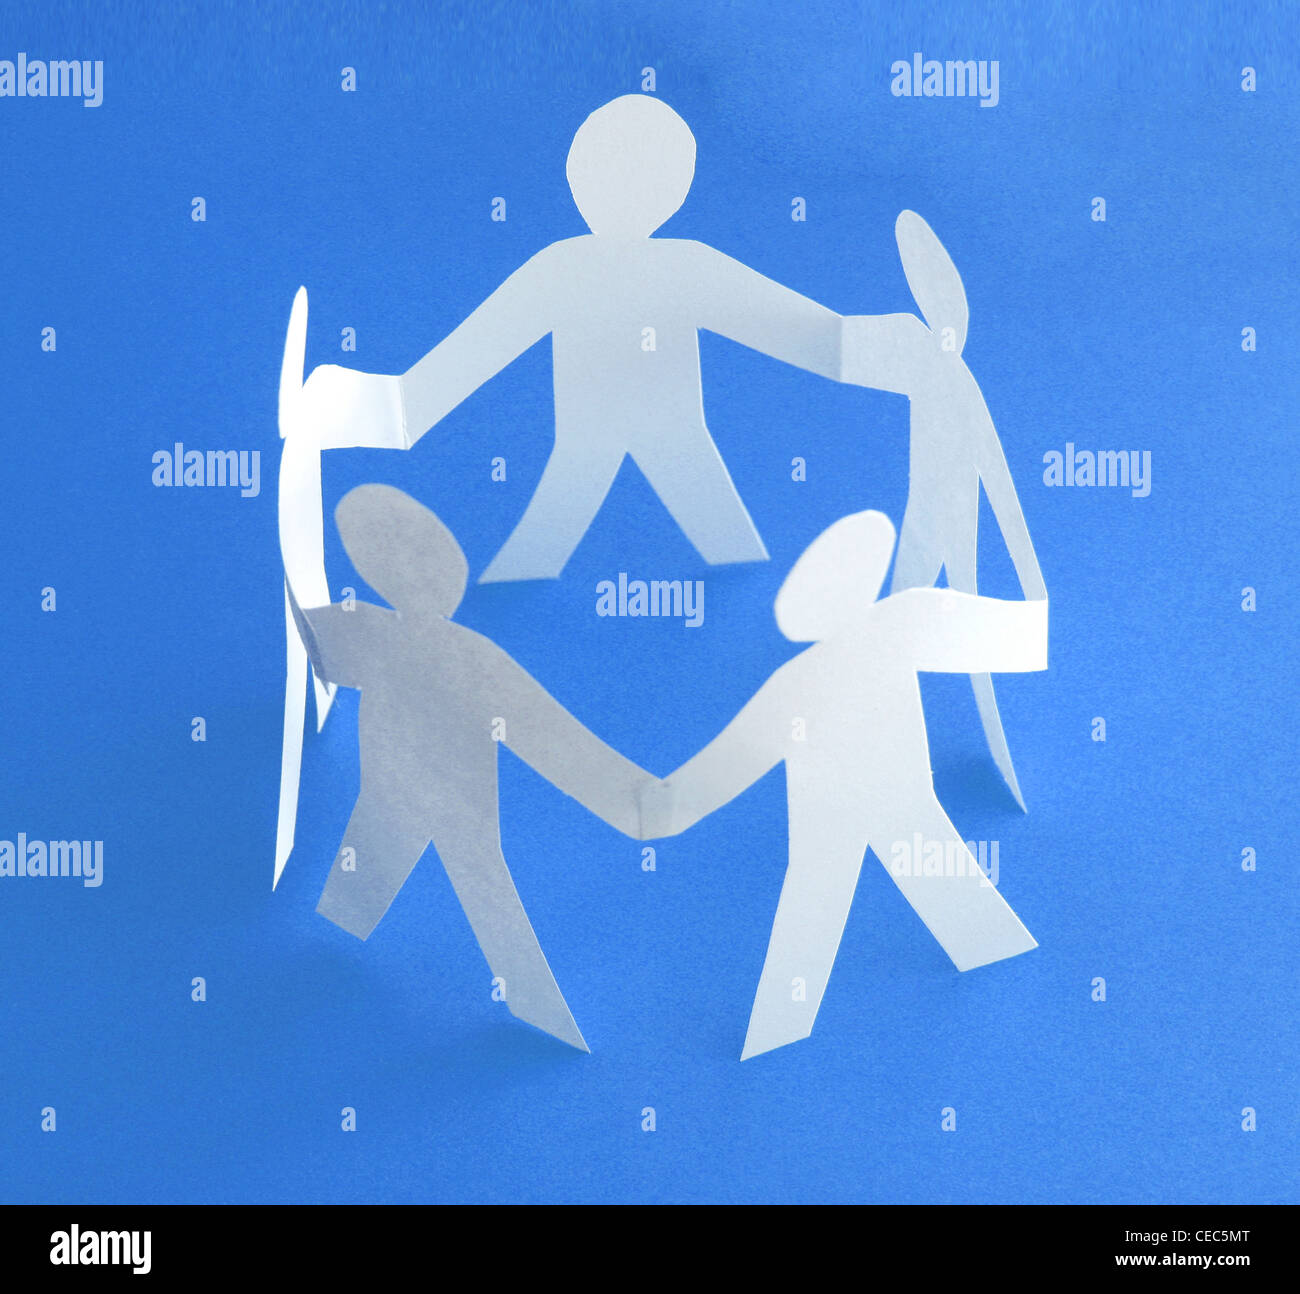 People - Stock Image